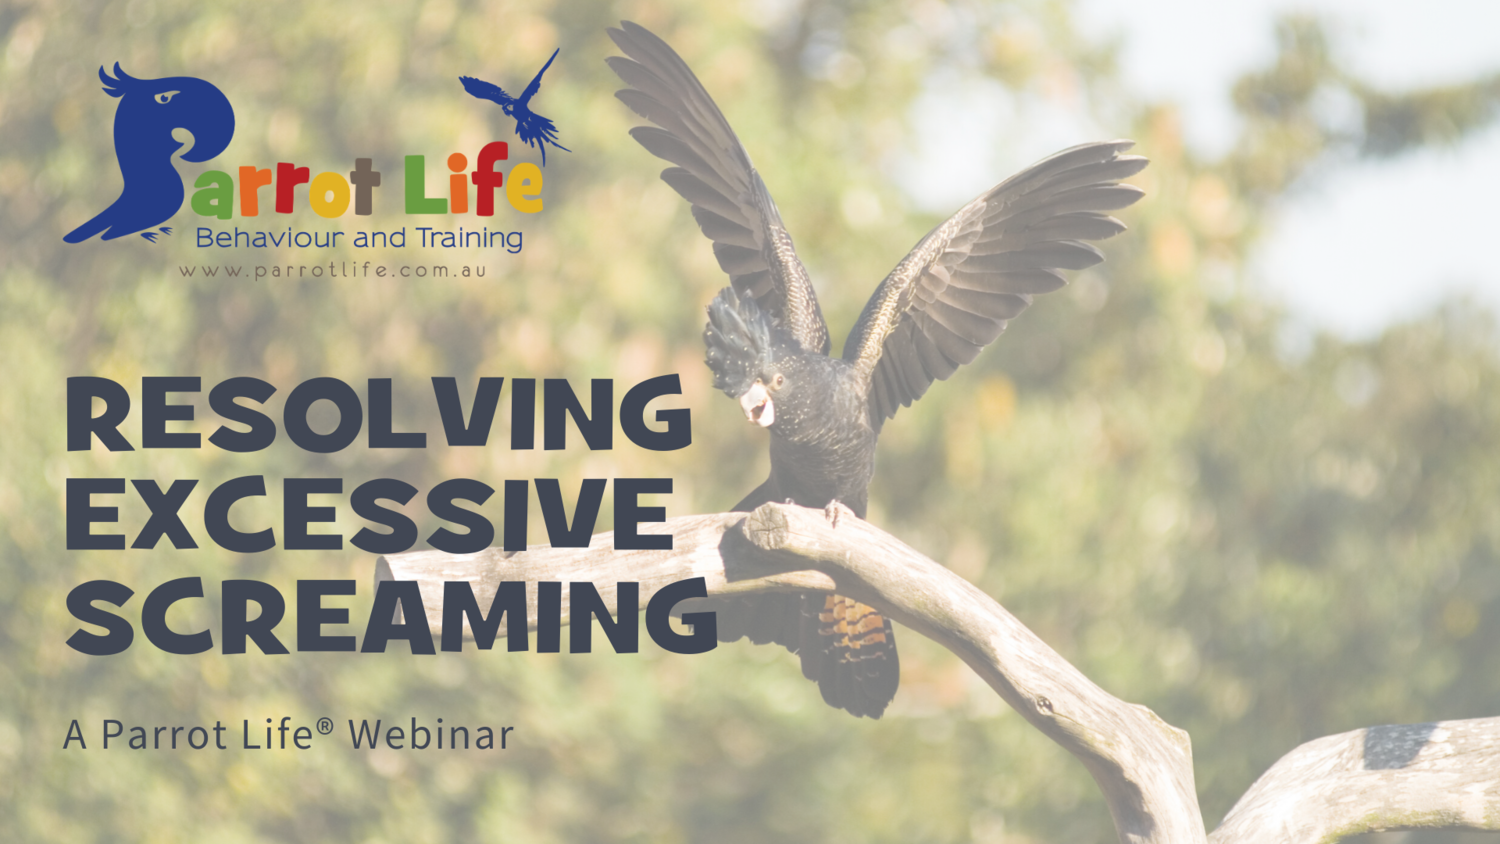 Resolving Excessive Screaming Webinar - 'On Demand'